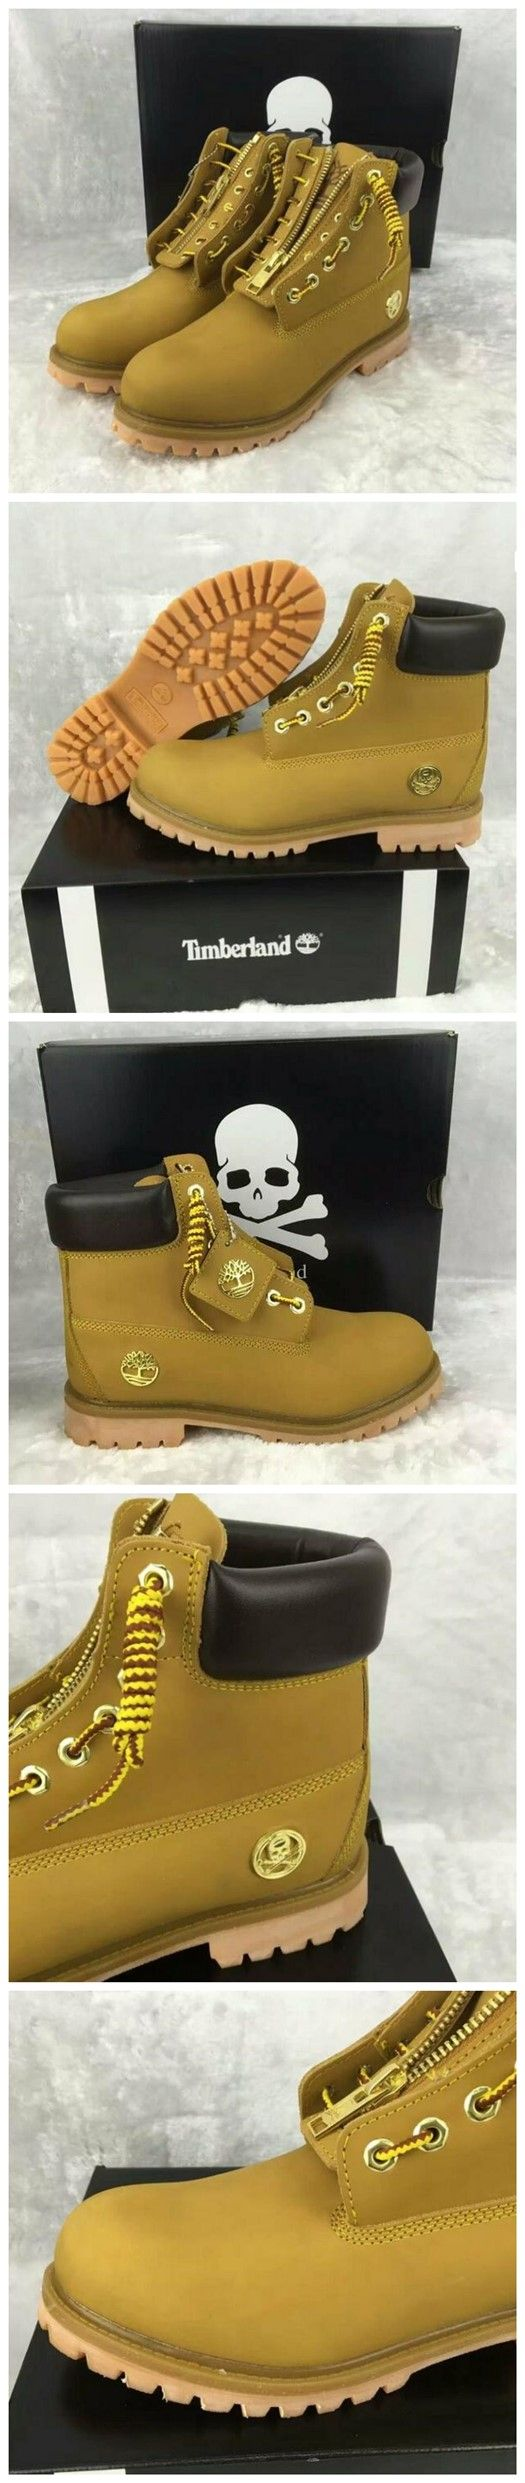 Timberland Authentic 6 Inch Boot - Wheat and Black For Men with Zipper ,timberland shoes christmas gifts,New Timberland Boots 2017,timberland boots waterproof,timberland boots style,timberland boots classics